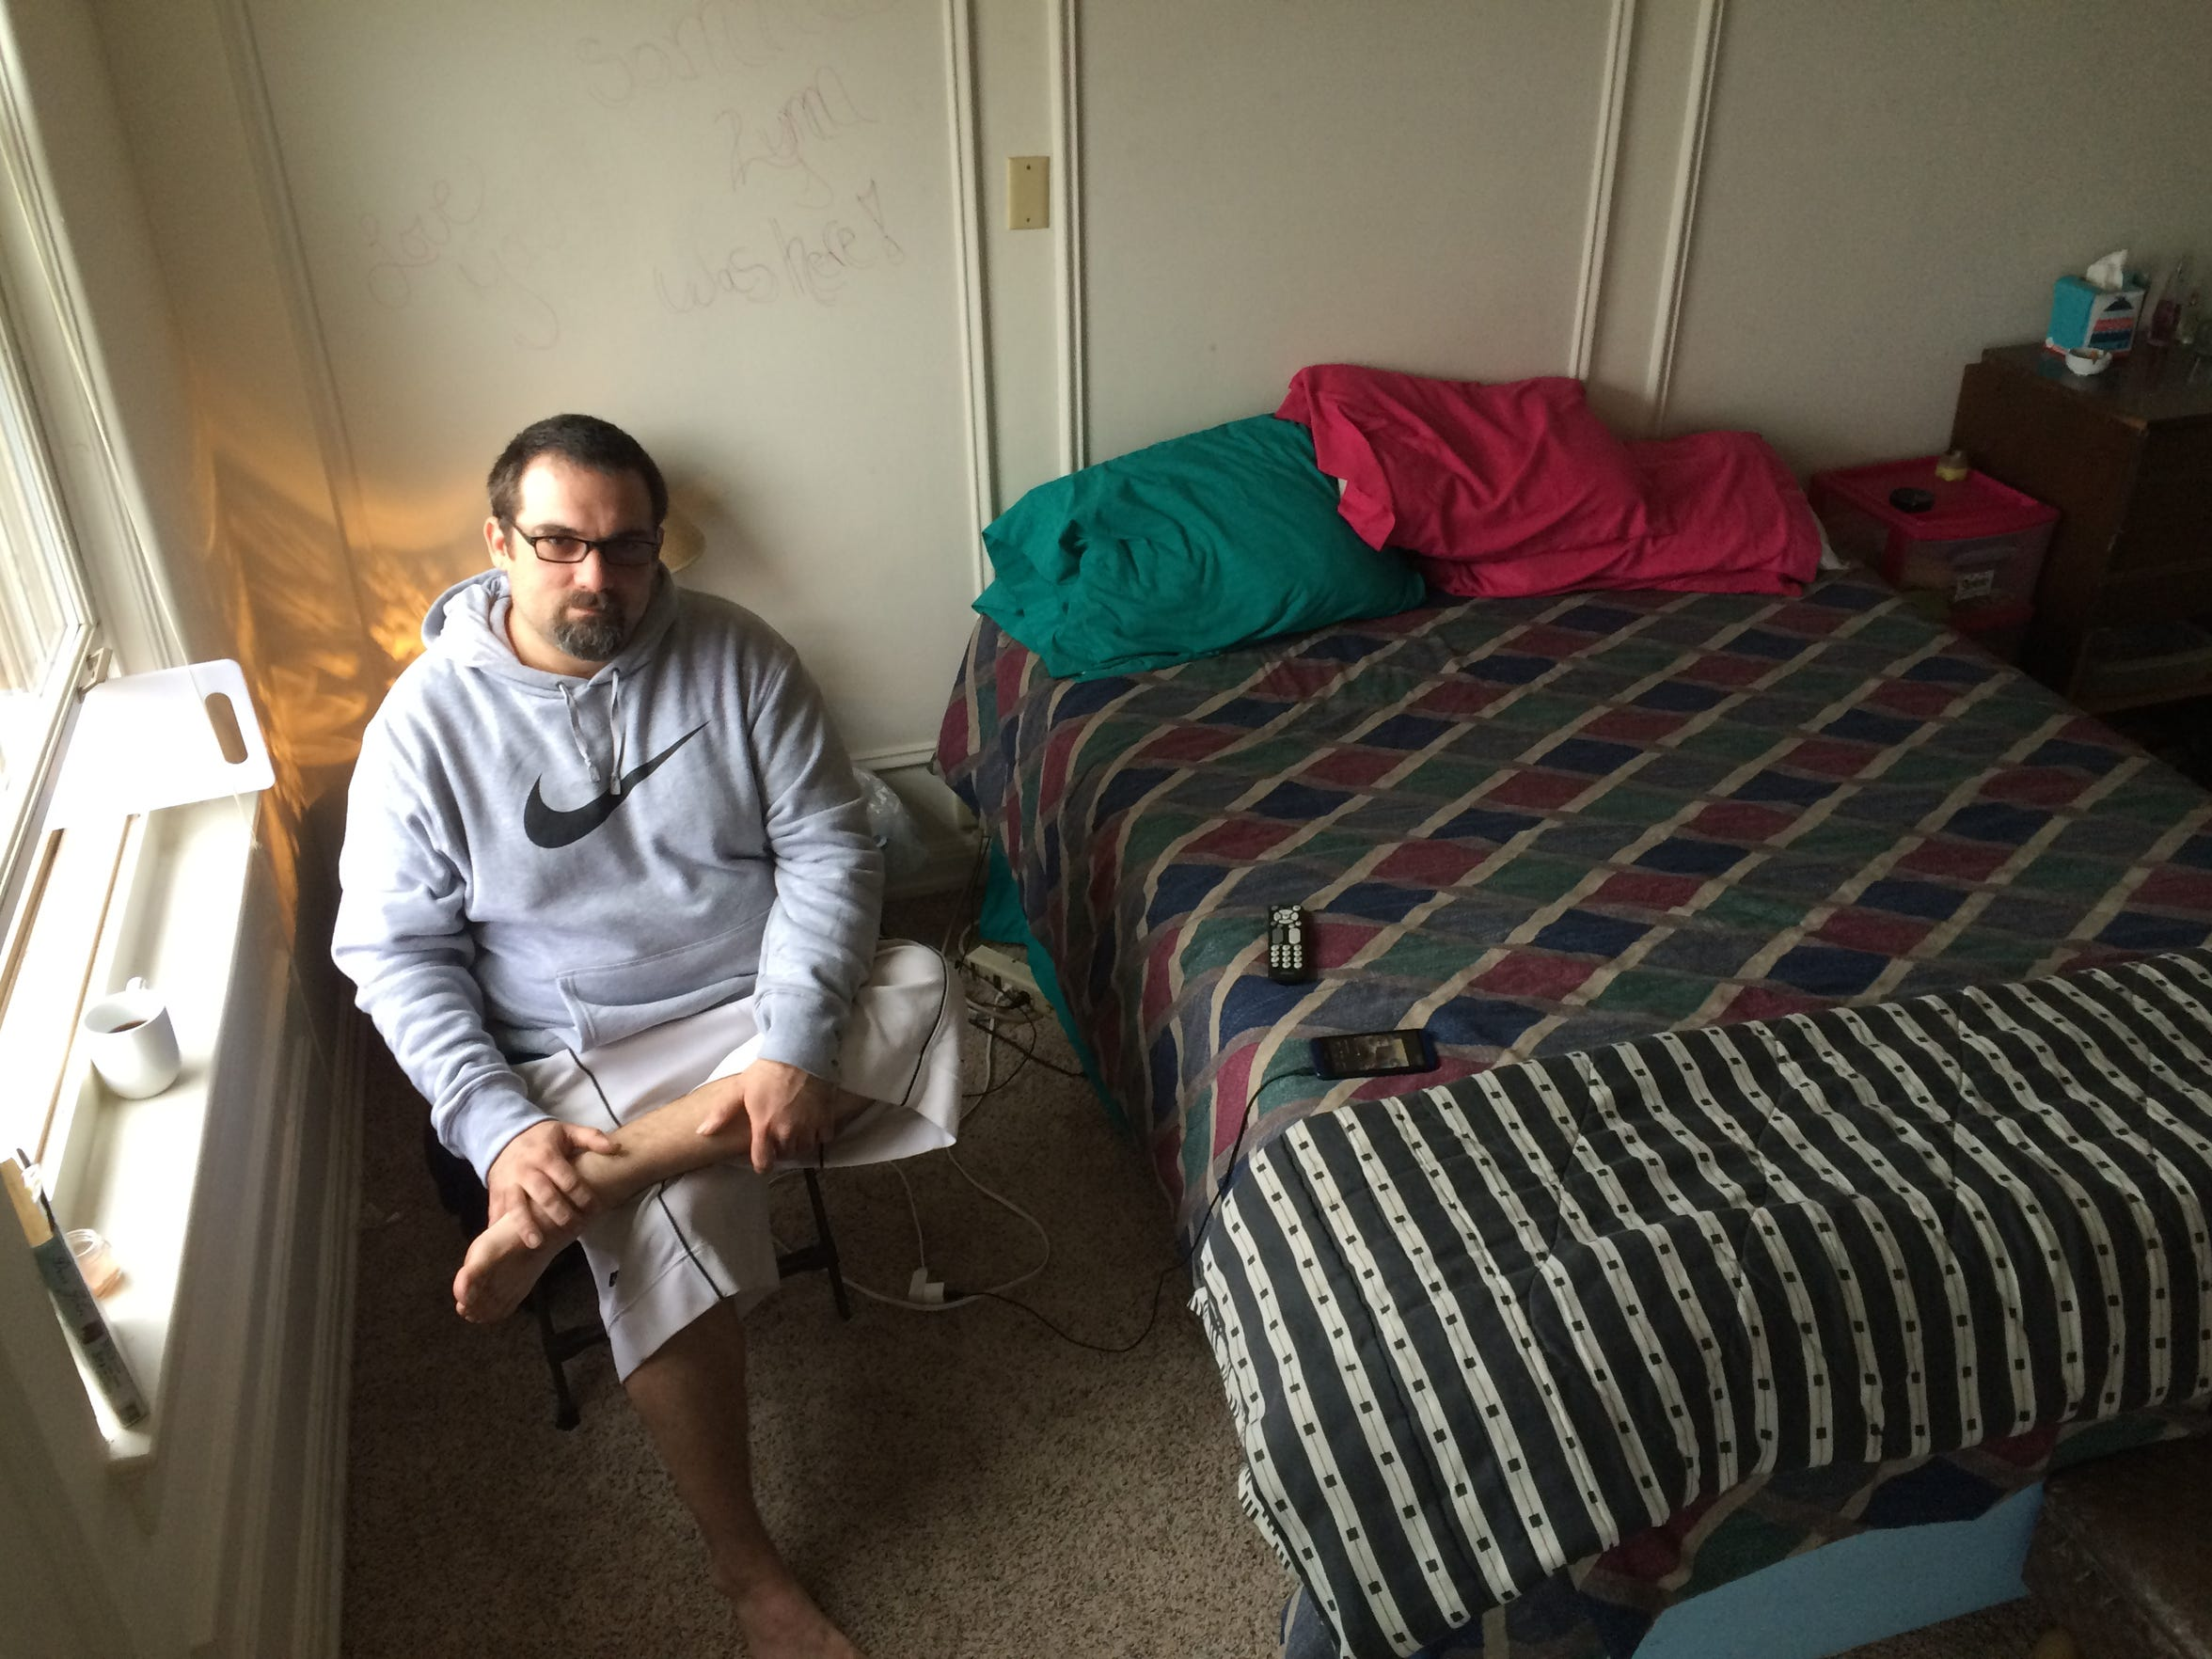 Shannon Wojciechowski found a one-room efficiency in the Landmark in downtown Wausau thanks to a mix of luck and persistence.